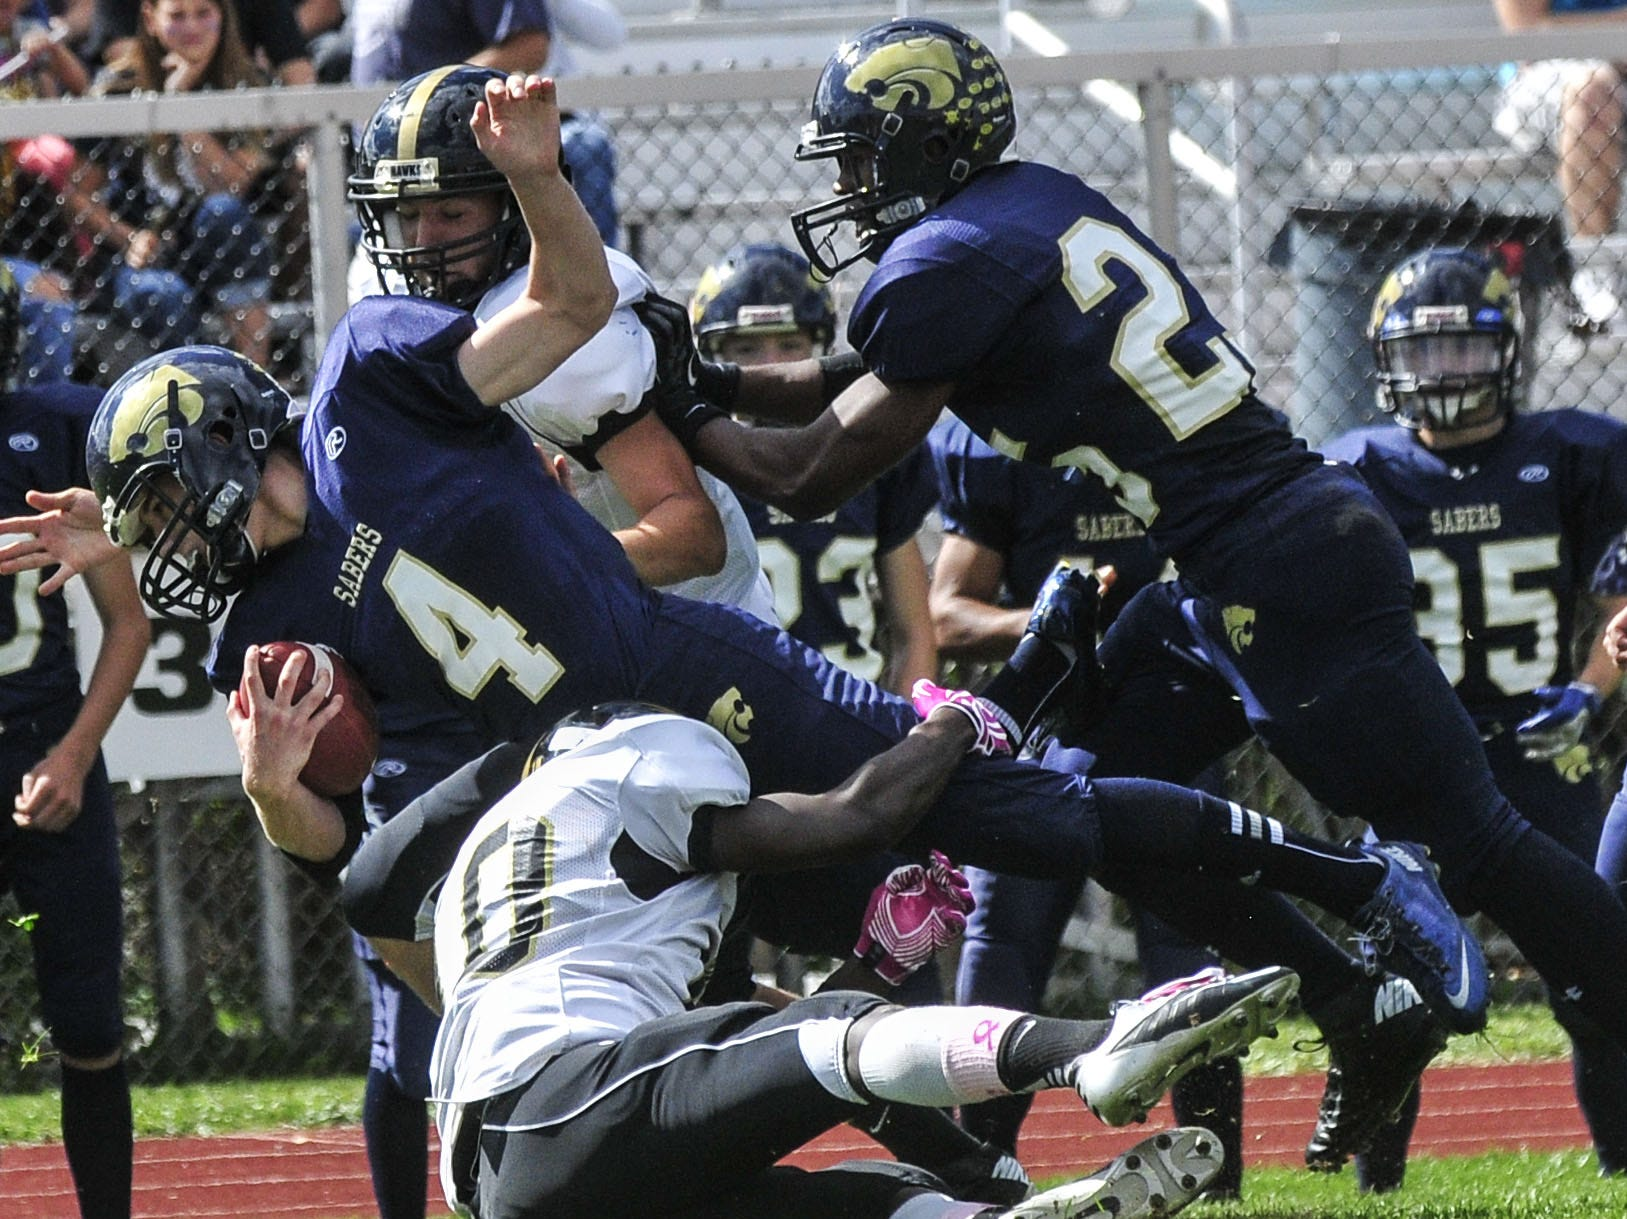 From 2013: Lain Zembek dives for a first down before being tackled by Corning?s Adarius France on Saturday afternoon at Susquehanna Valley High. The Sabers scored 20 first-half points but fell short, 28-27.